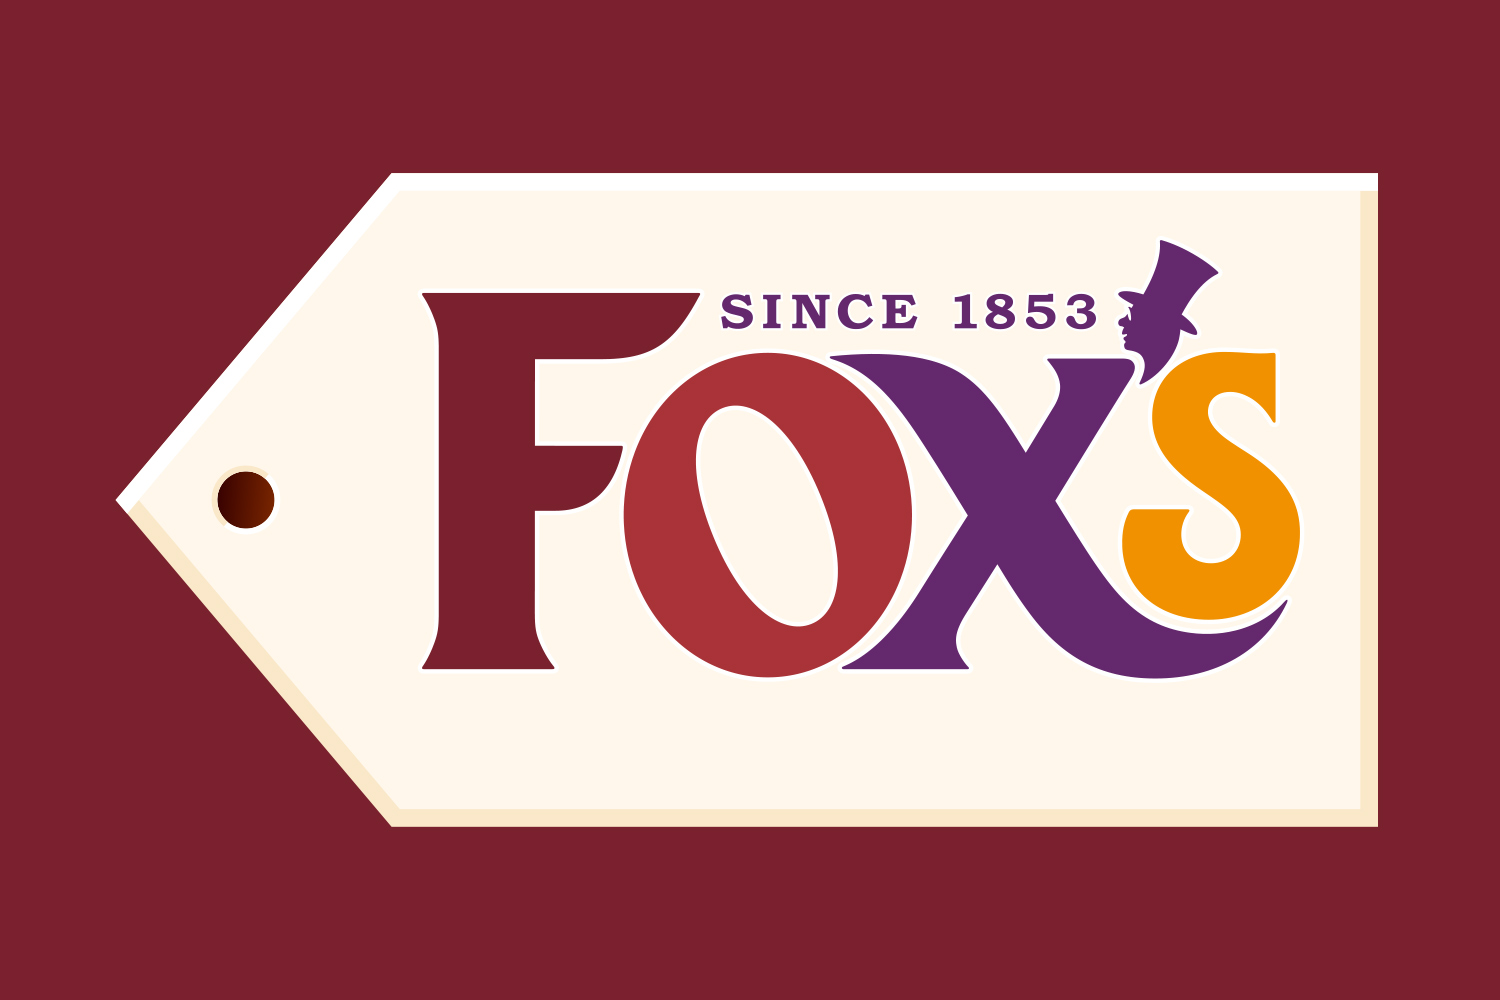 Lettering and Mr. Fox illustration